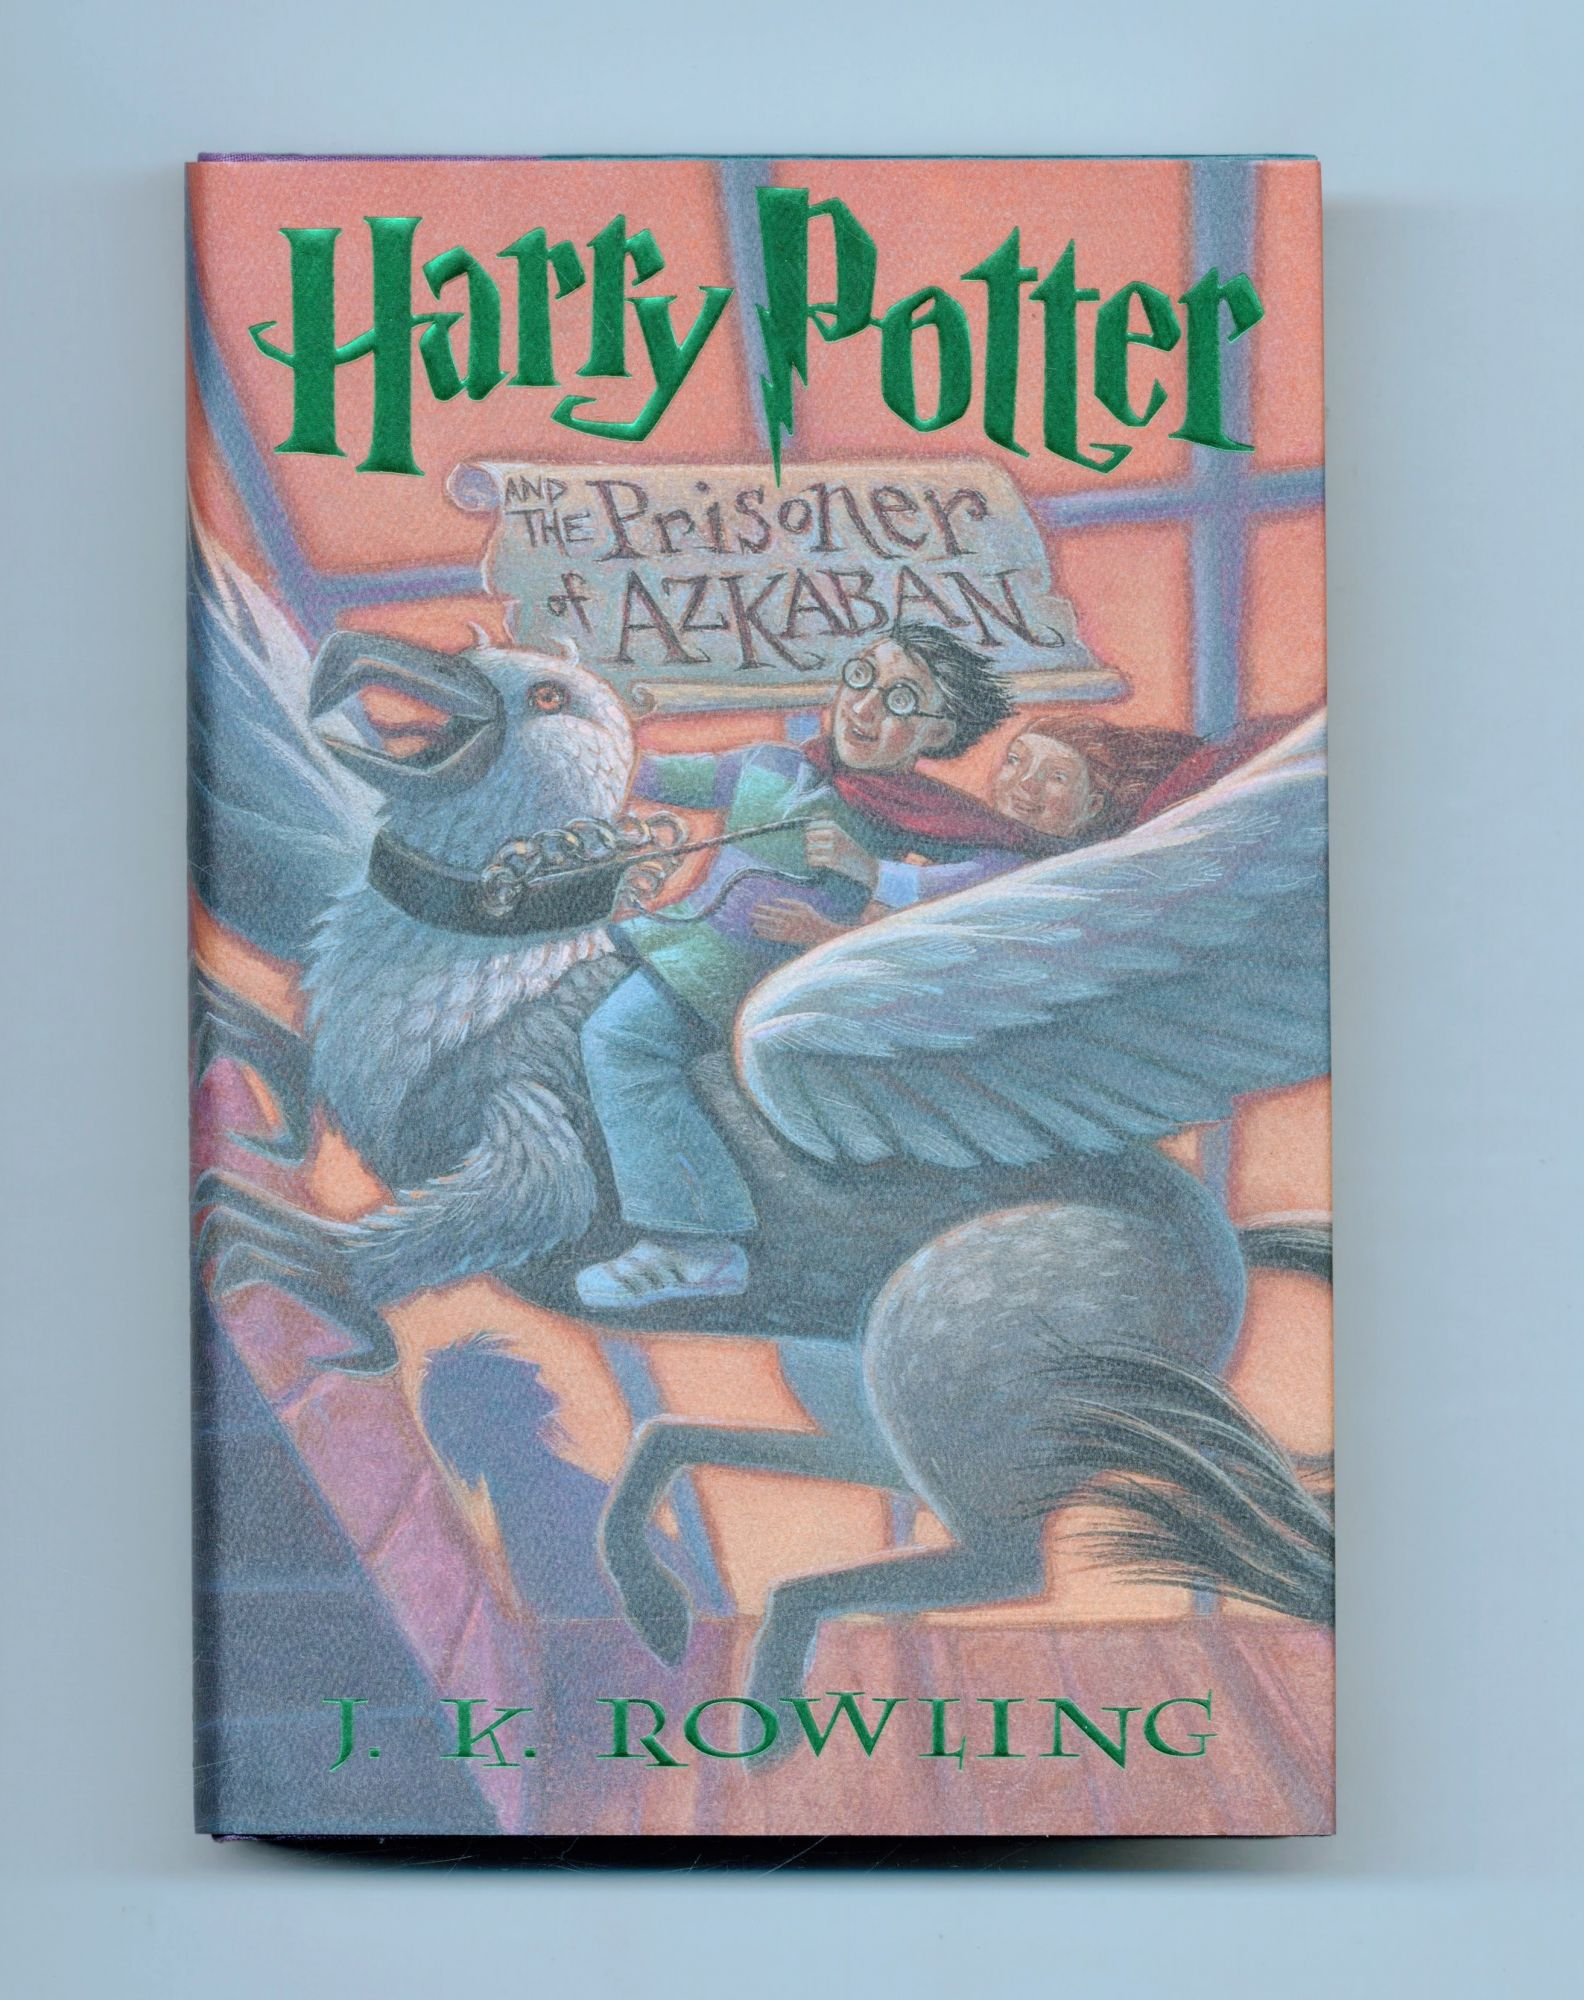 Harry Potter And The Prisoner Of Azkaban 1st Us Edition Printing J K